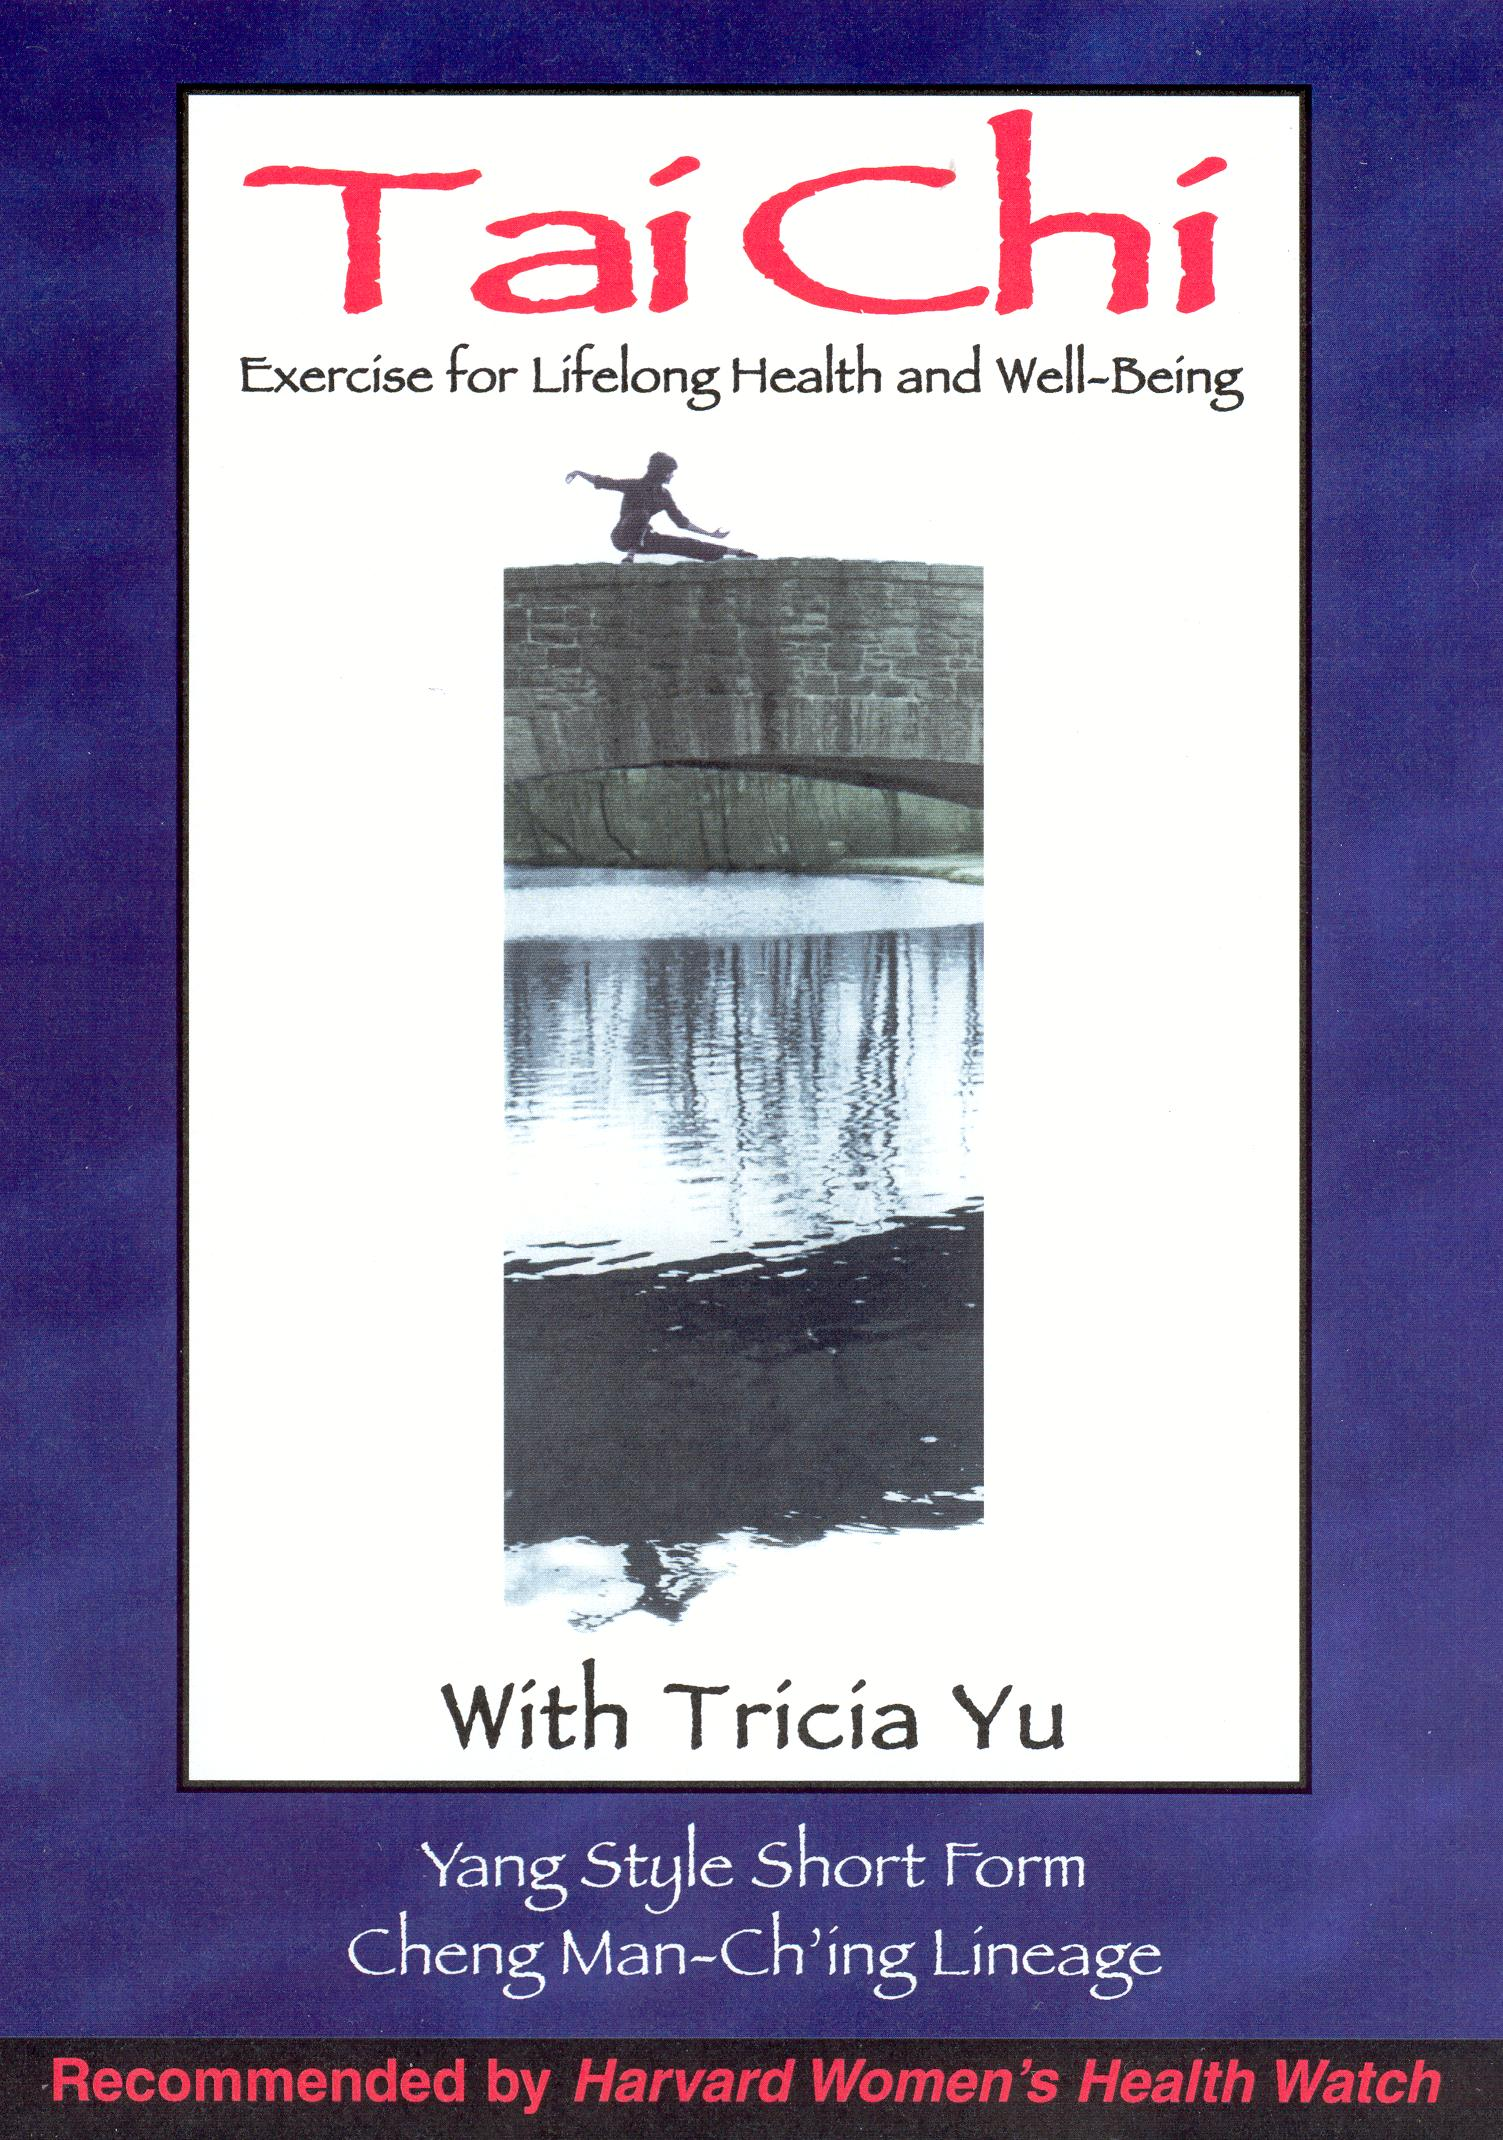 T'ai Chi Exercise for Lifelong Health and Well-Being